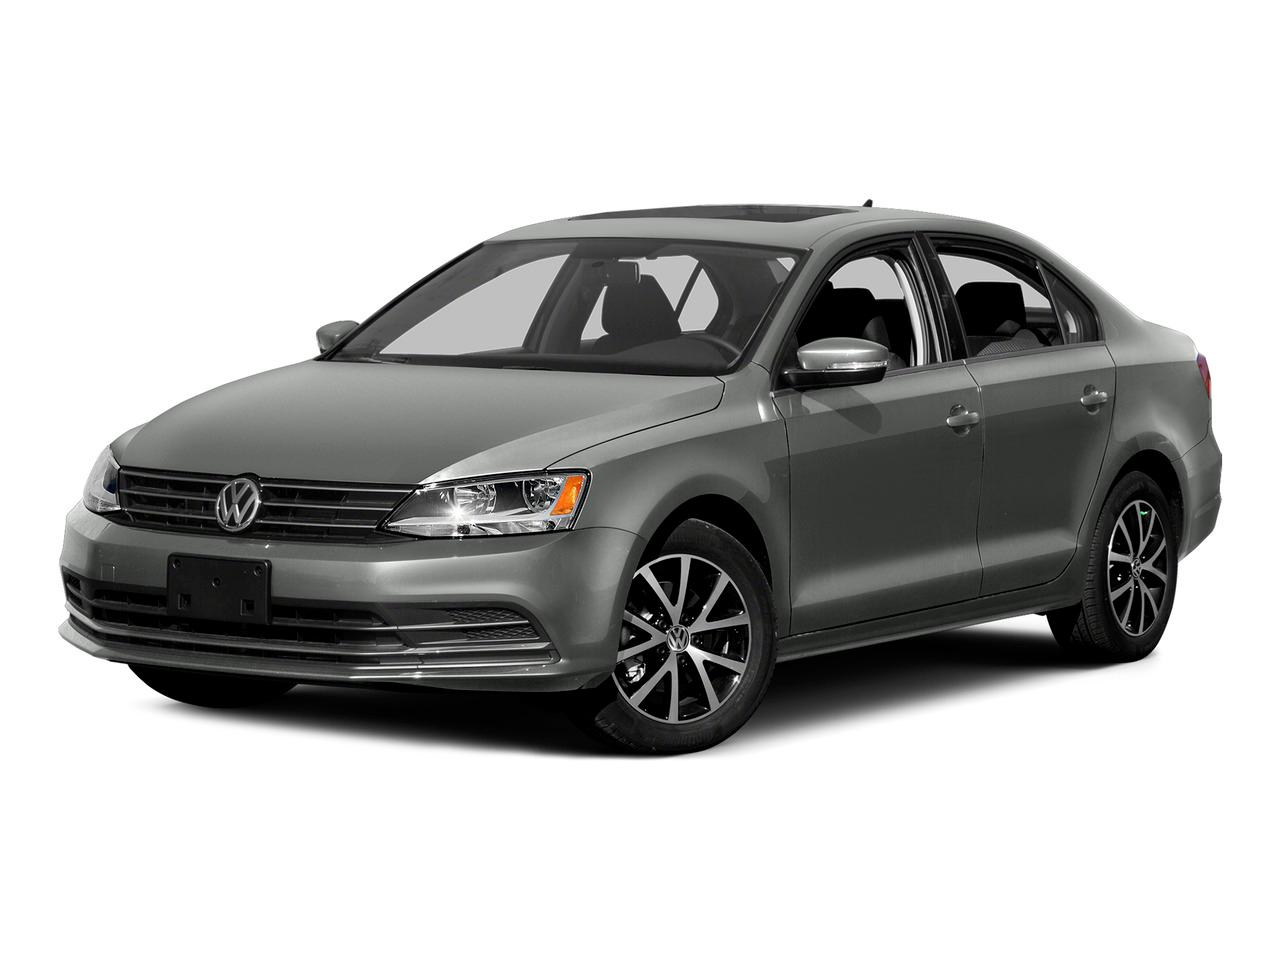 2015 Volkswagen Jetta Sedan Vehicle Photo in Quakertown, PA 18951